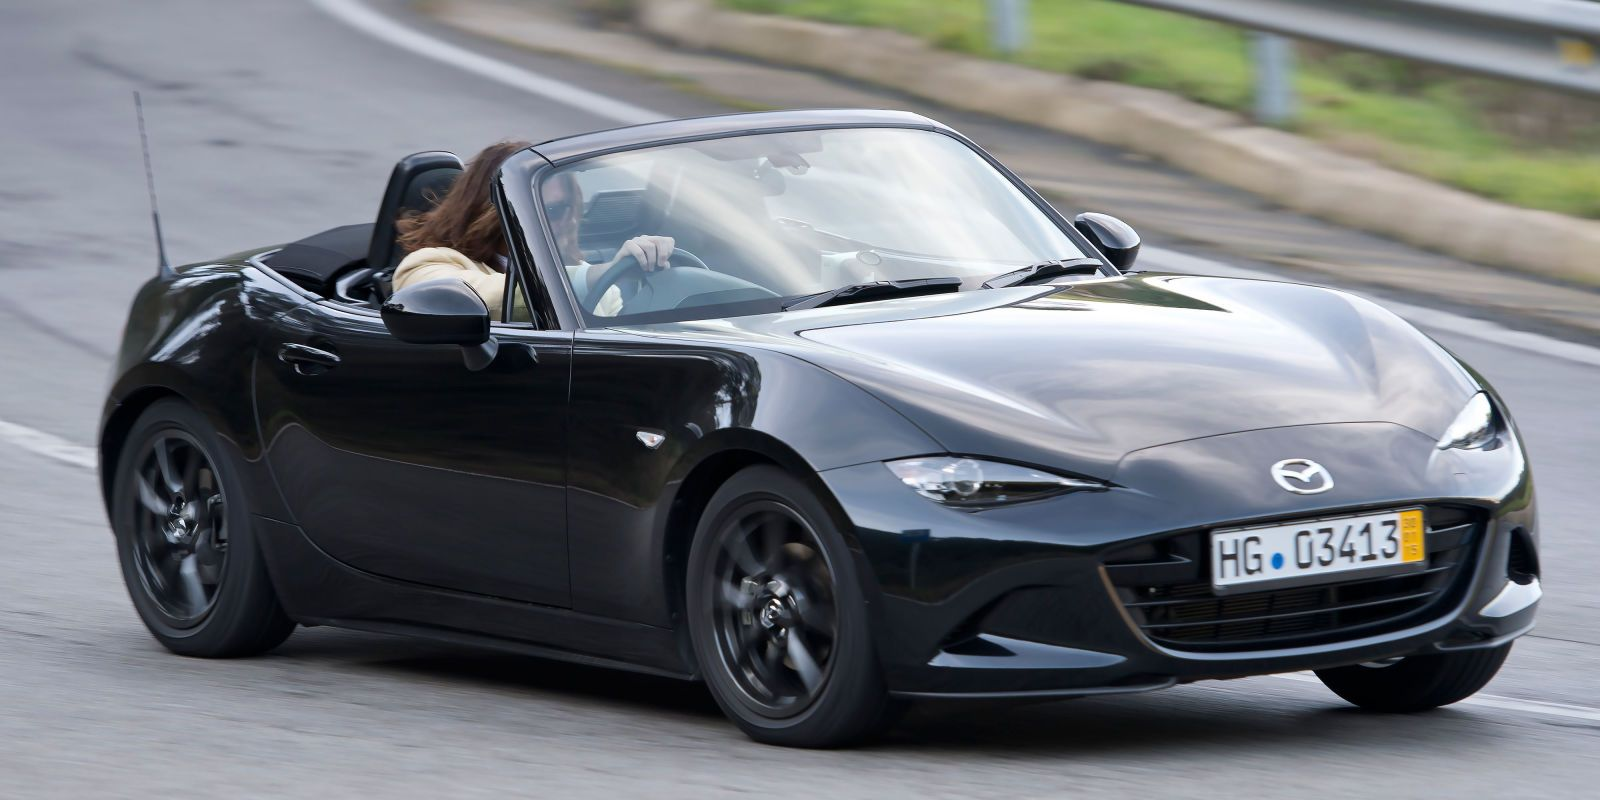 Mazda reboots a winning franchise. Here's a closer look at the MX-5 Miata in action.